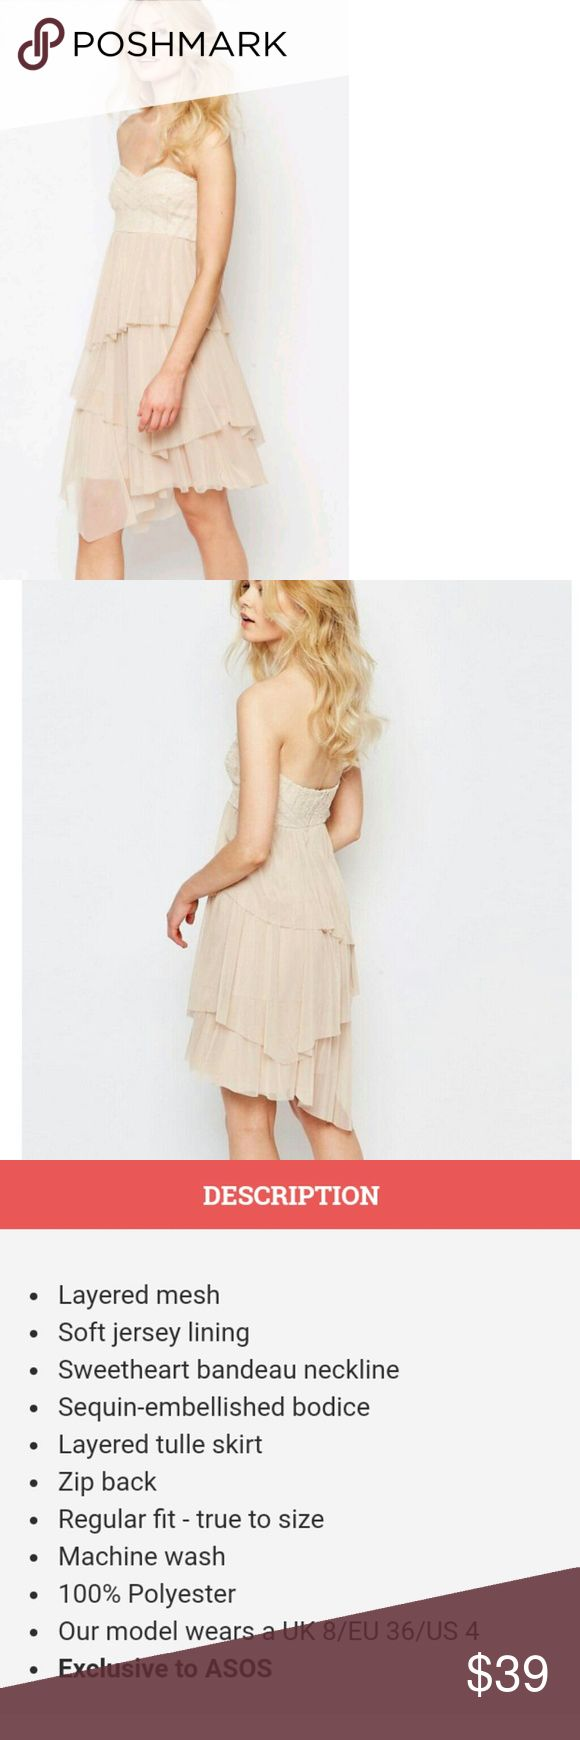 Zack Petite Dress With comes with our Boutique sales tag this unit is brand new it is a nude color this is a UK 10 and a US 6 dress by John Zack Petite distributed by Asos ASOS Petite Dresses